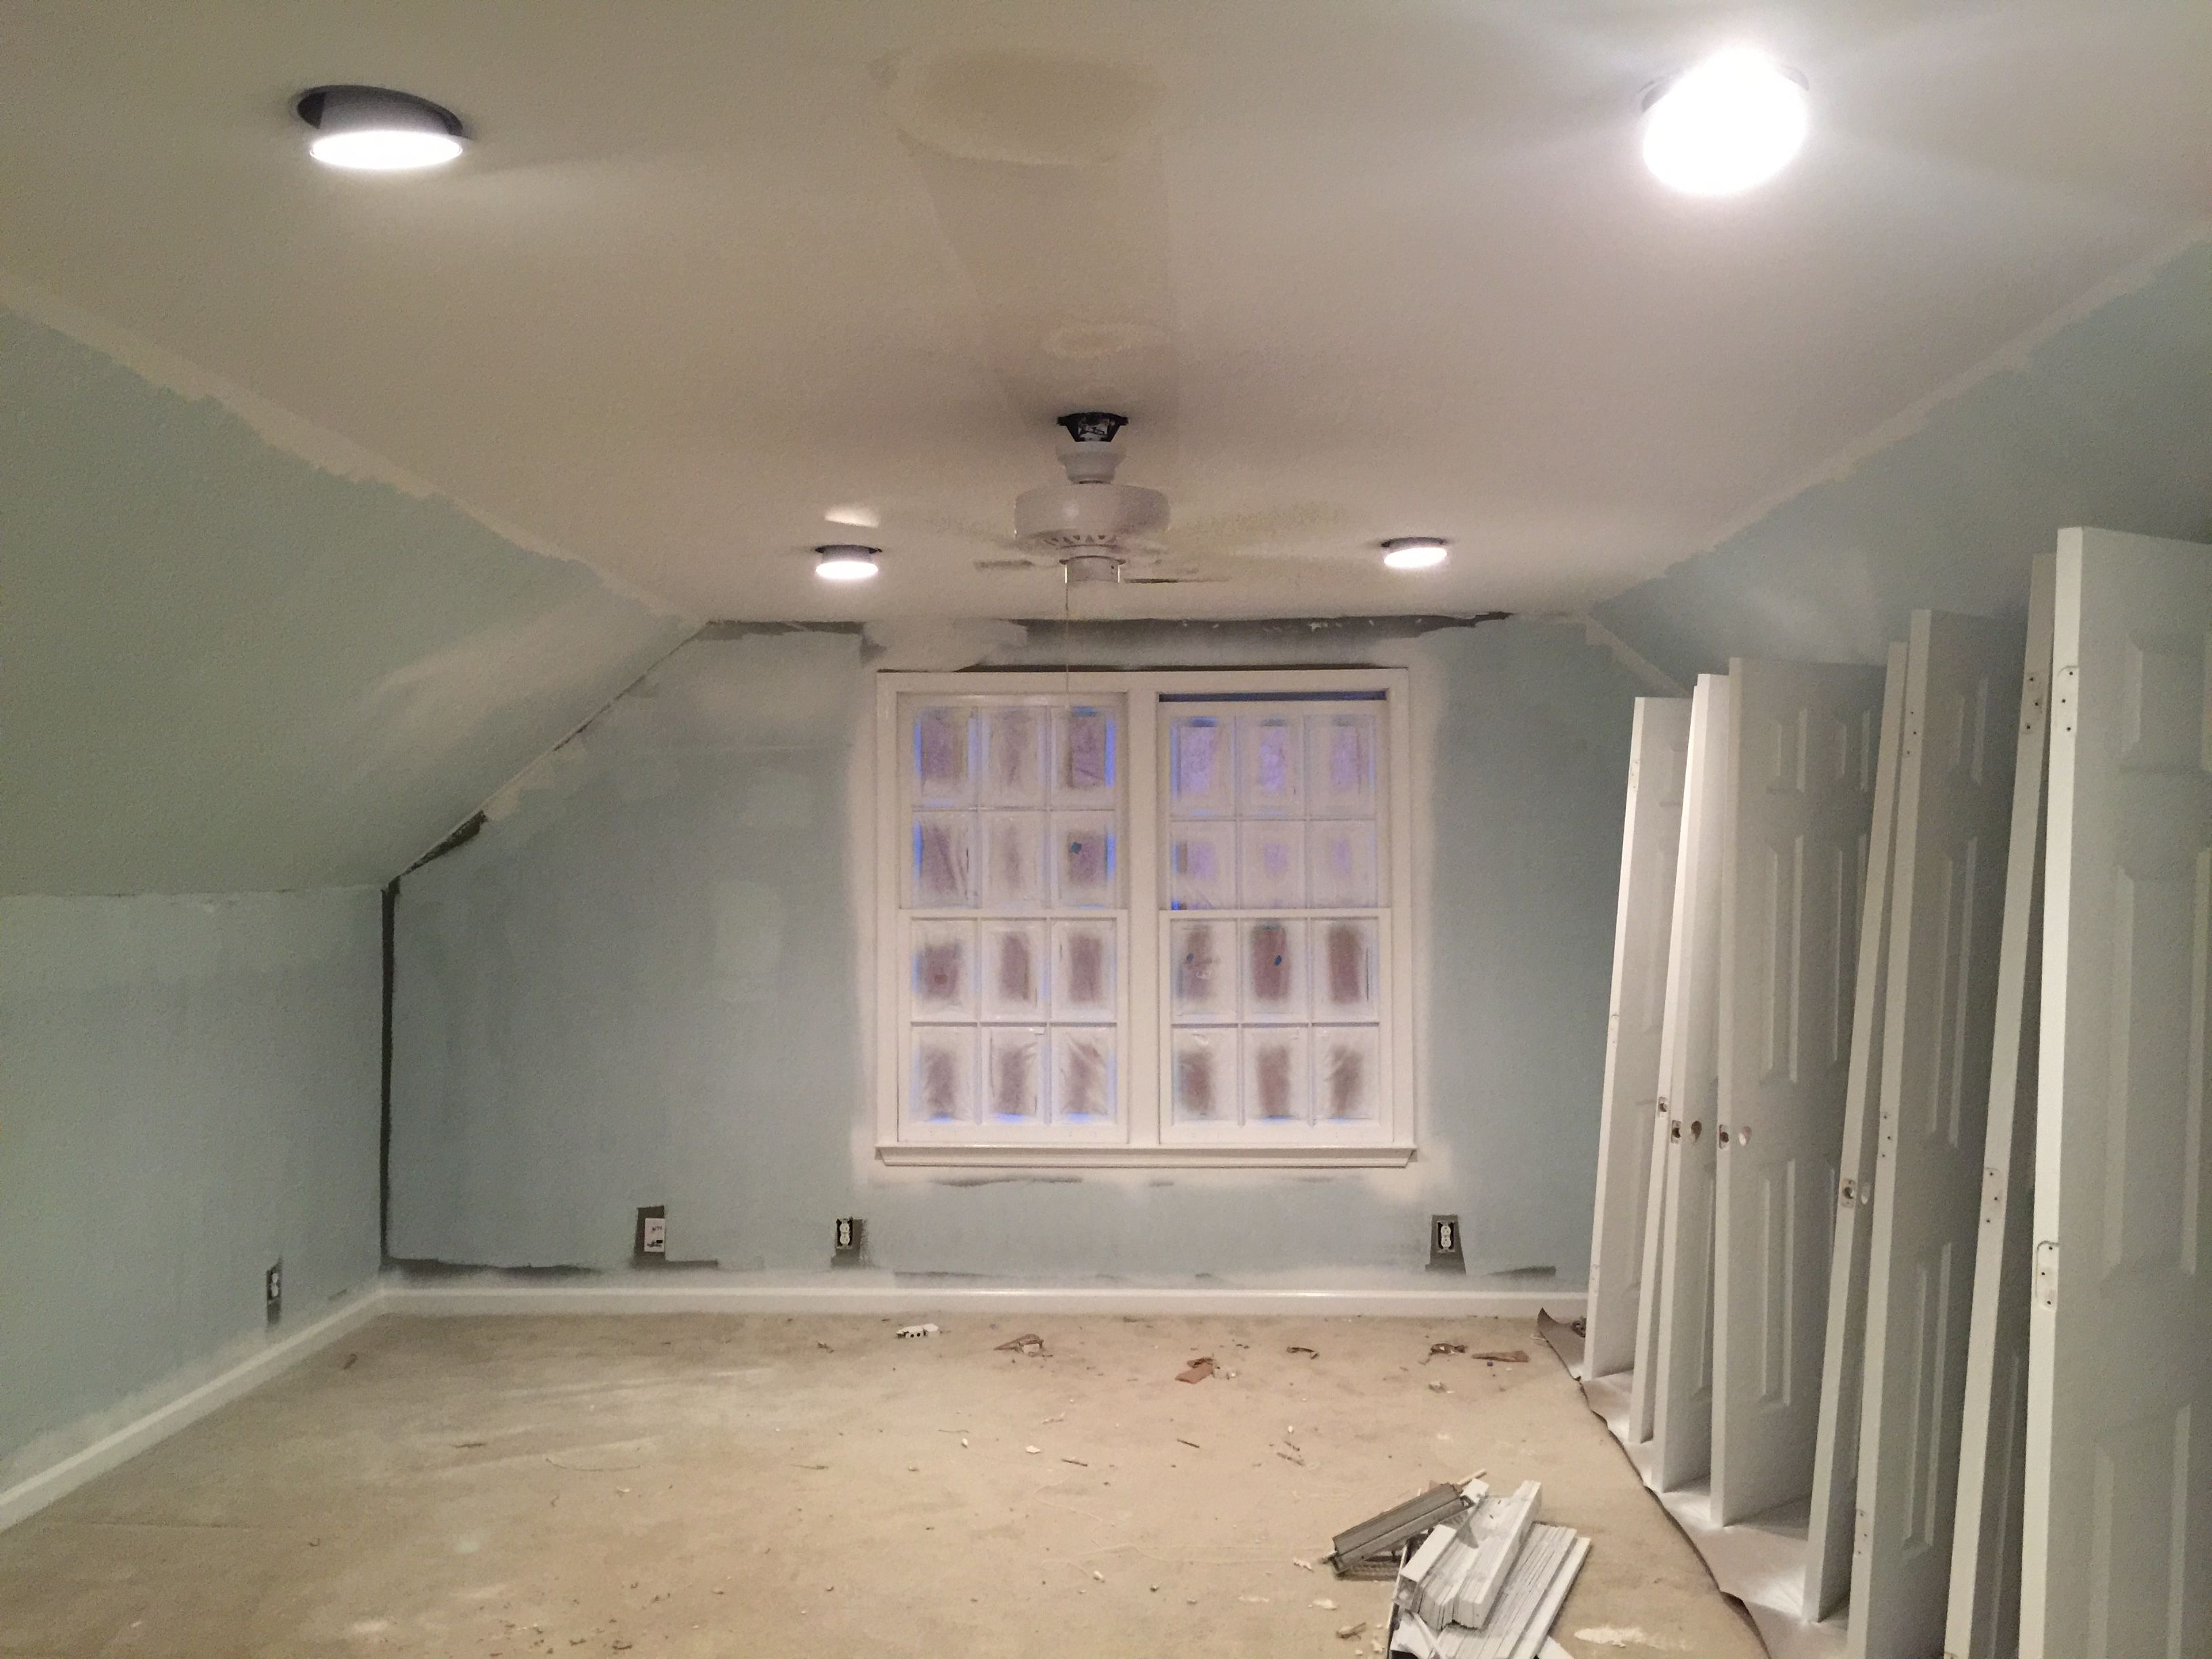 BONUS ROOM-IN PROGRESS-  We have added recessed lighting, updated to a nice bright color, added a white ceiling fan